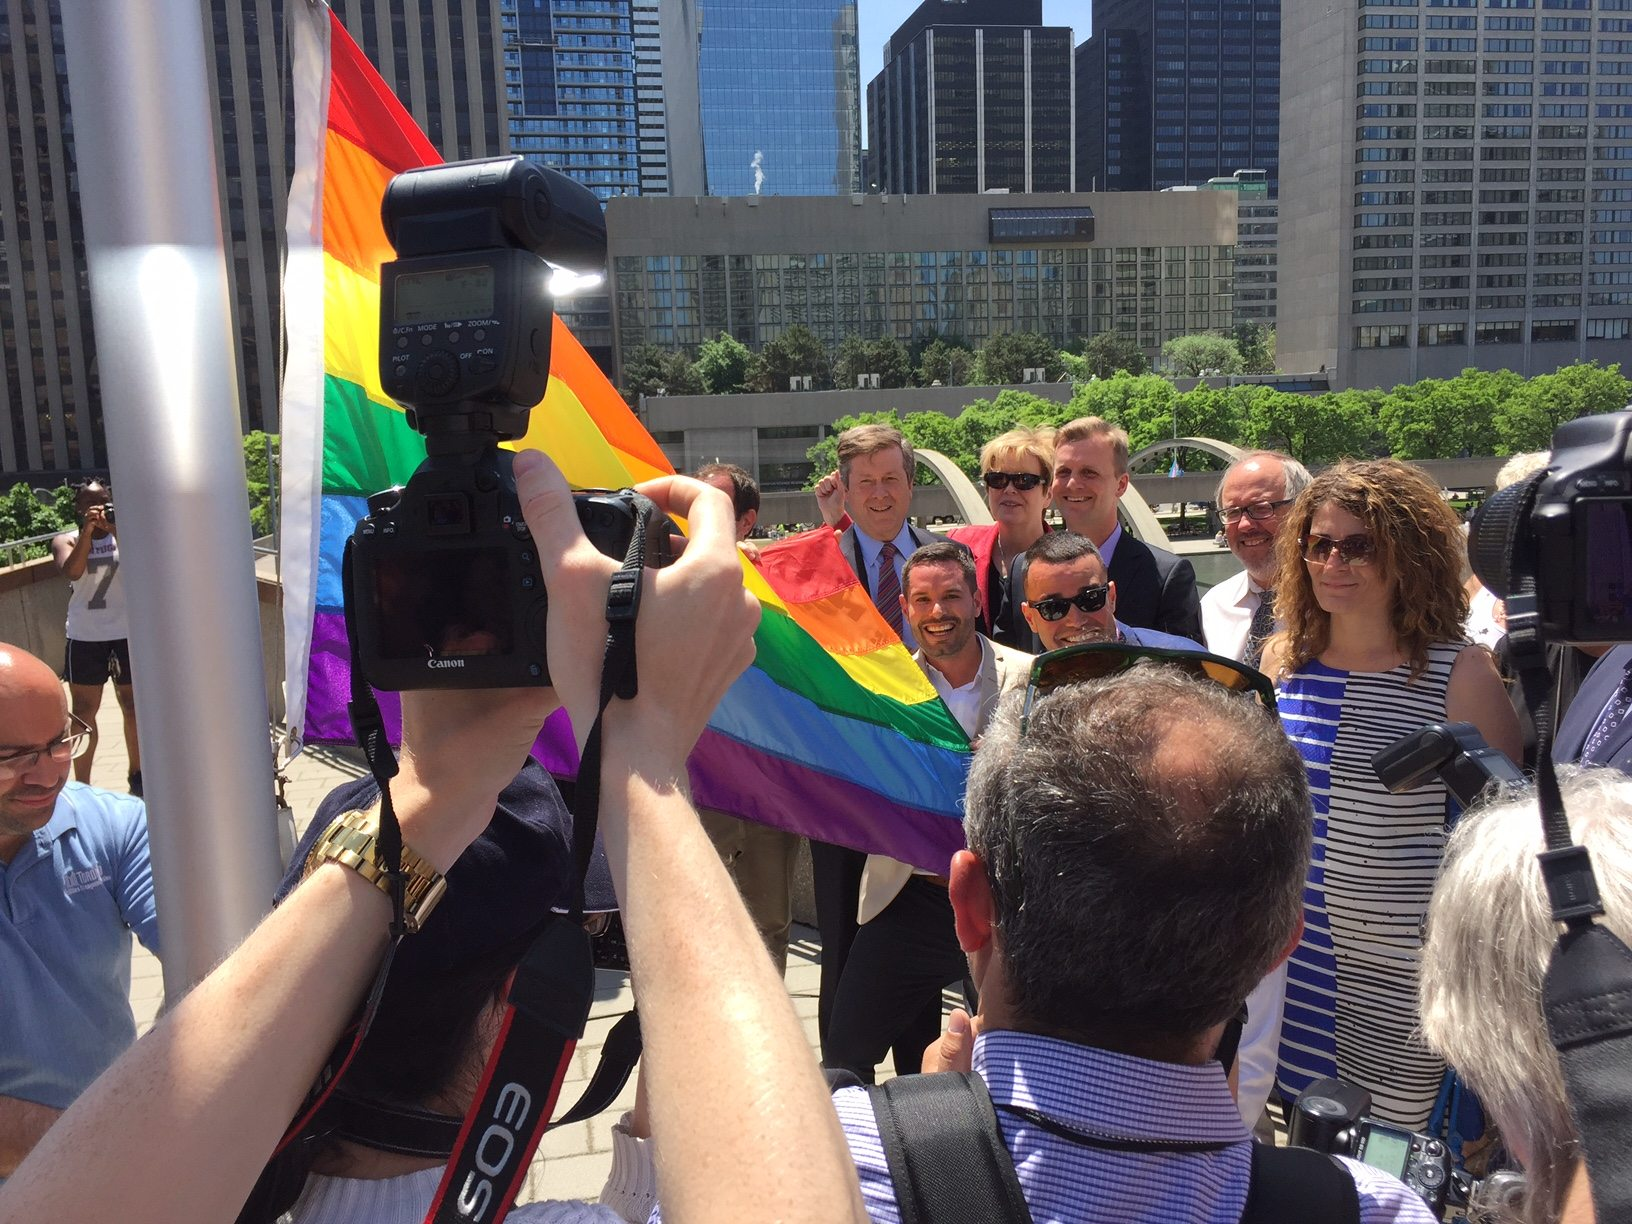 Reporters gather to snap photos as the rainbow flag is raised.